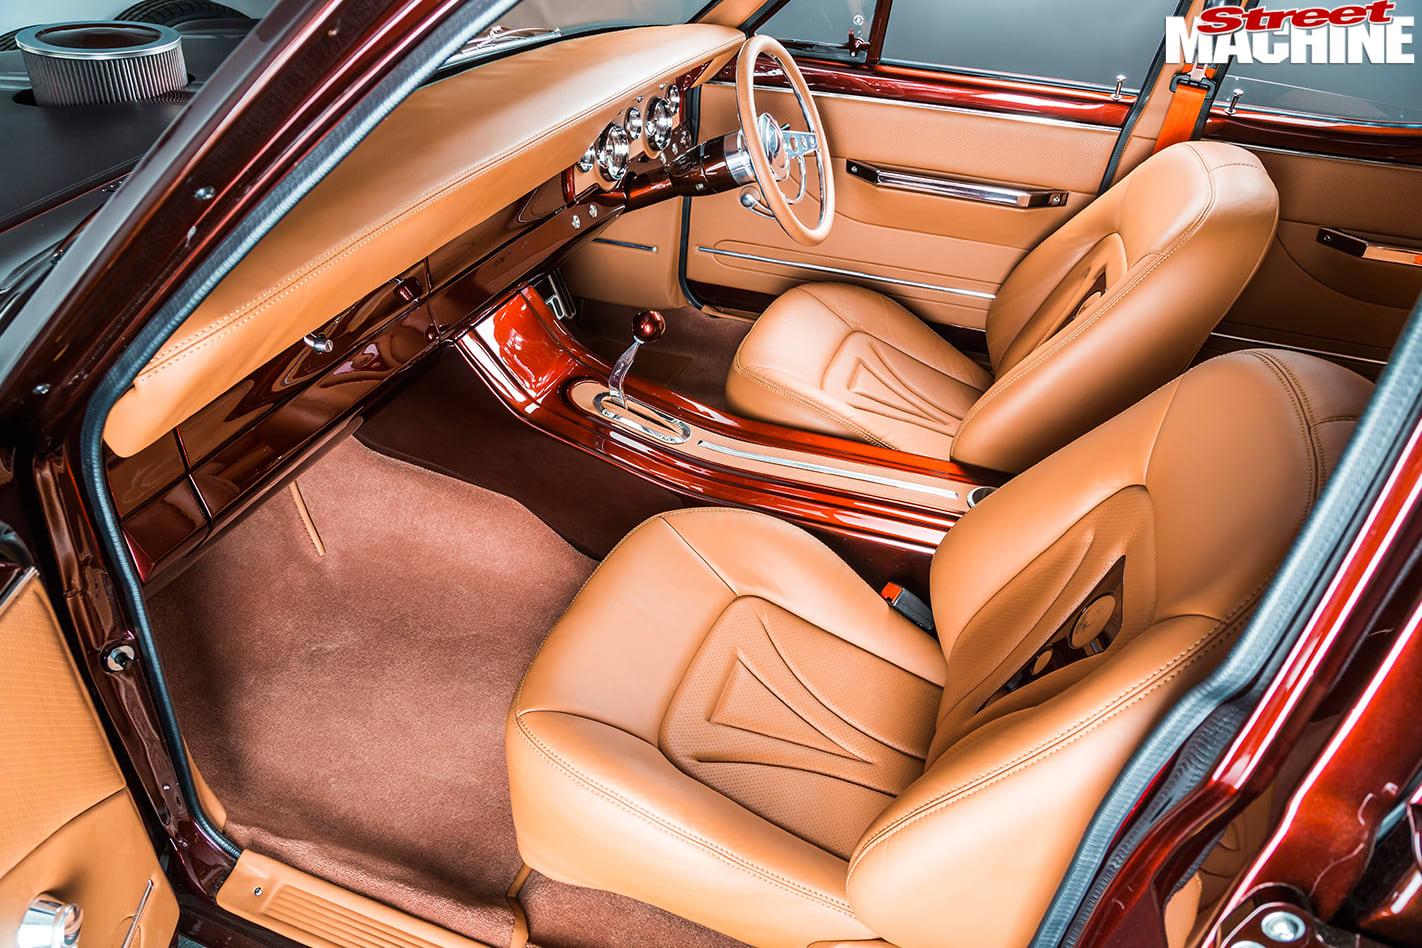 Ford -Falcon -XR-interior -front -2